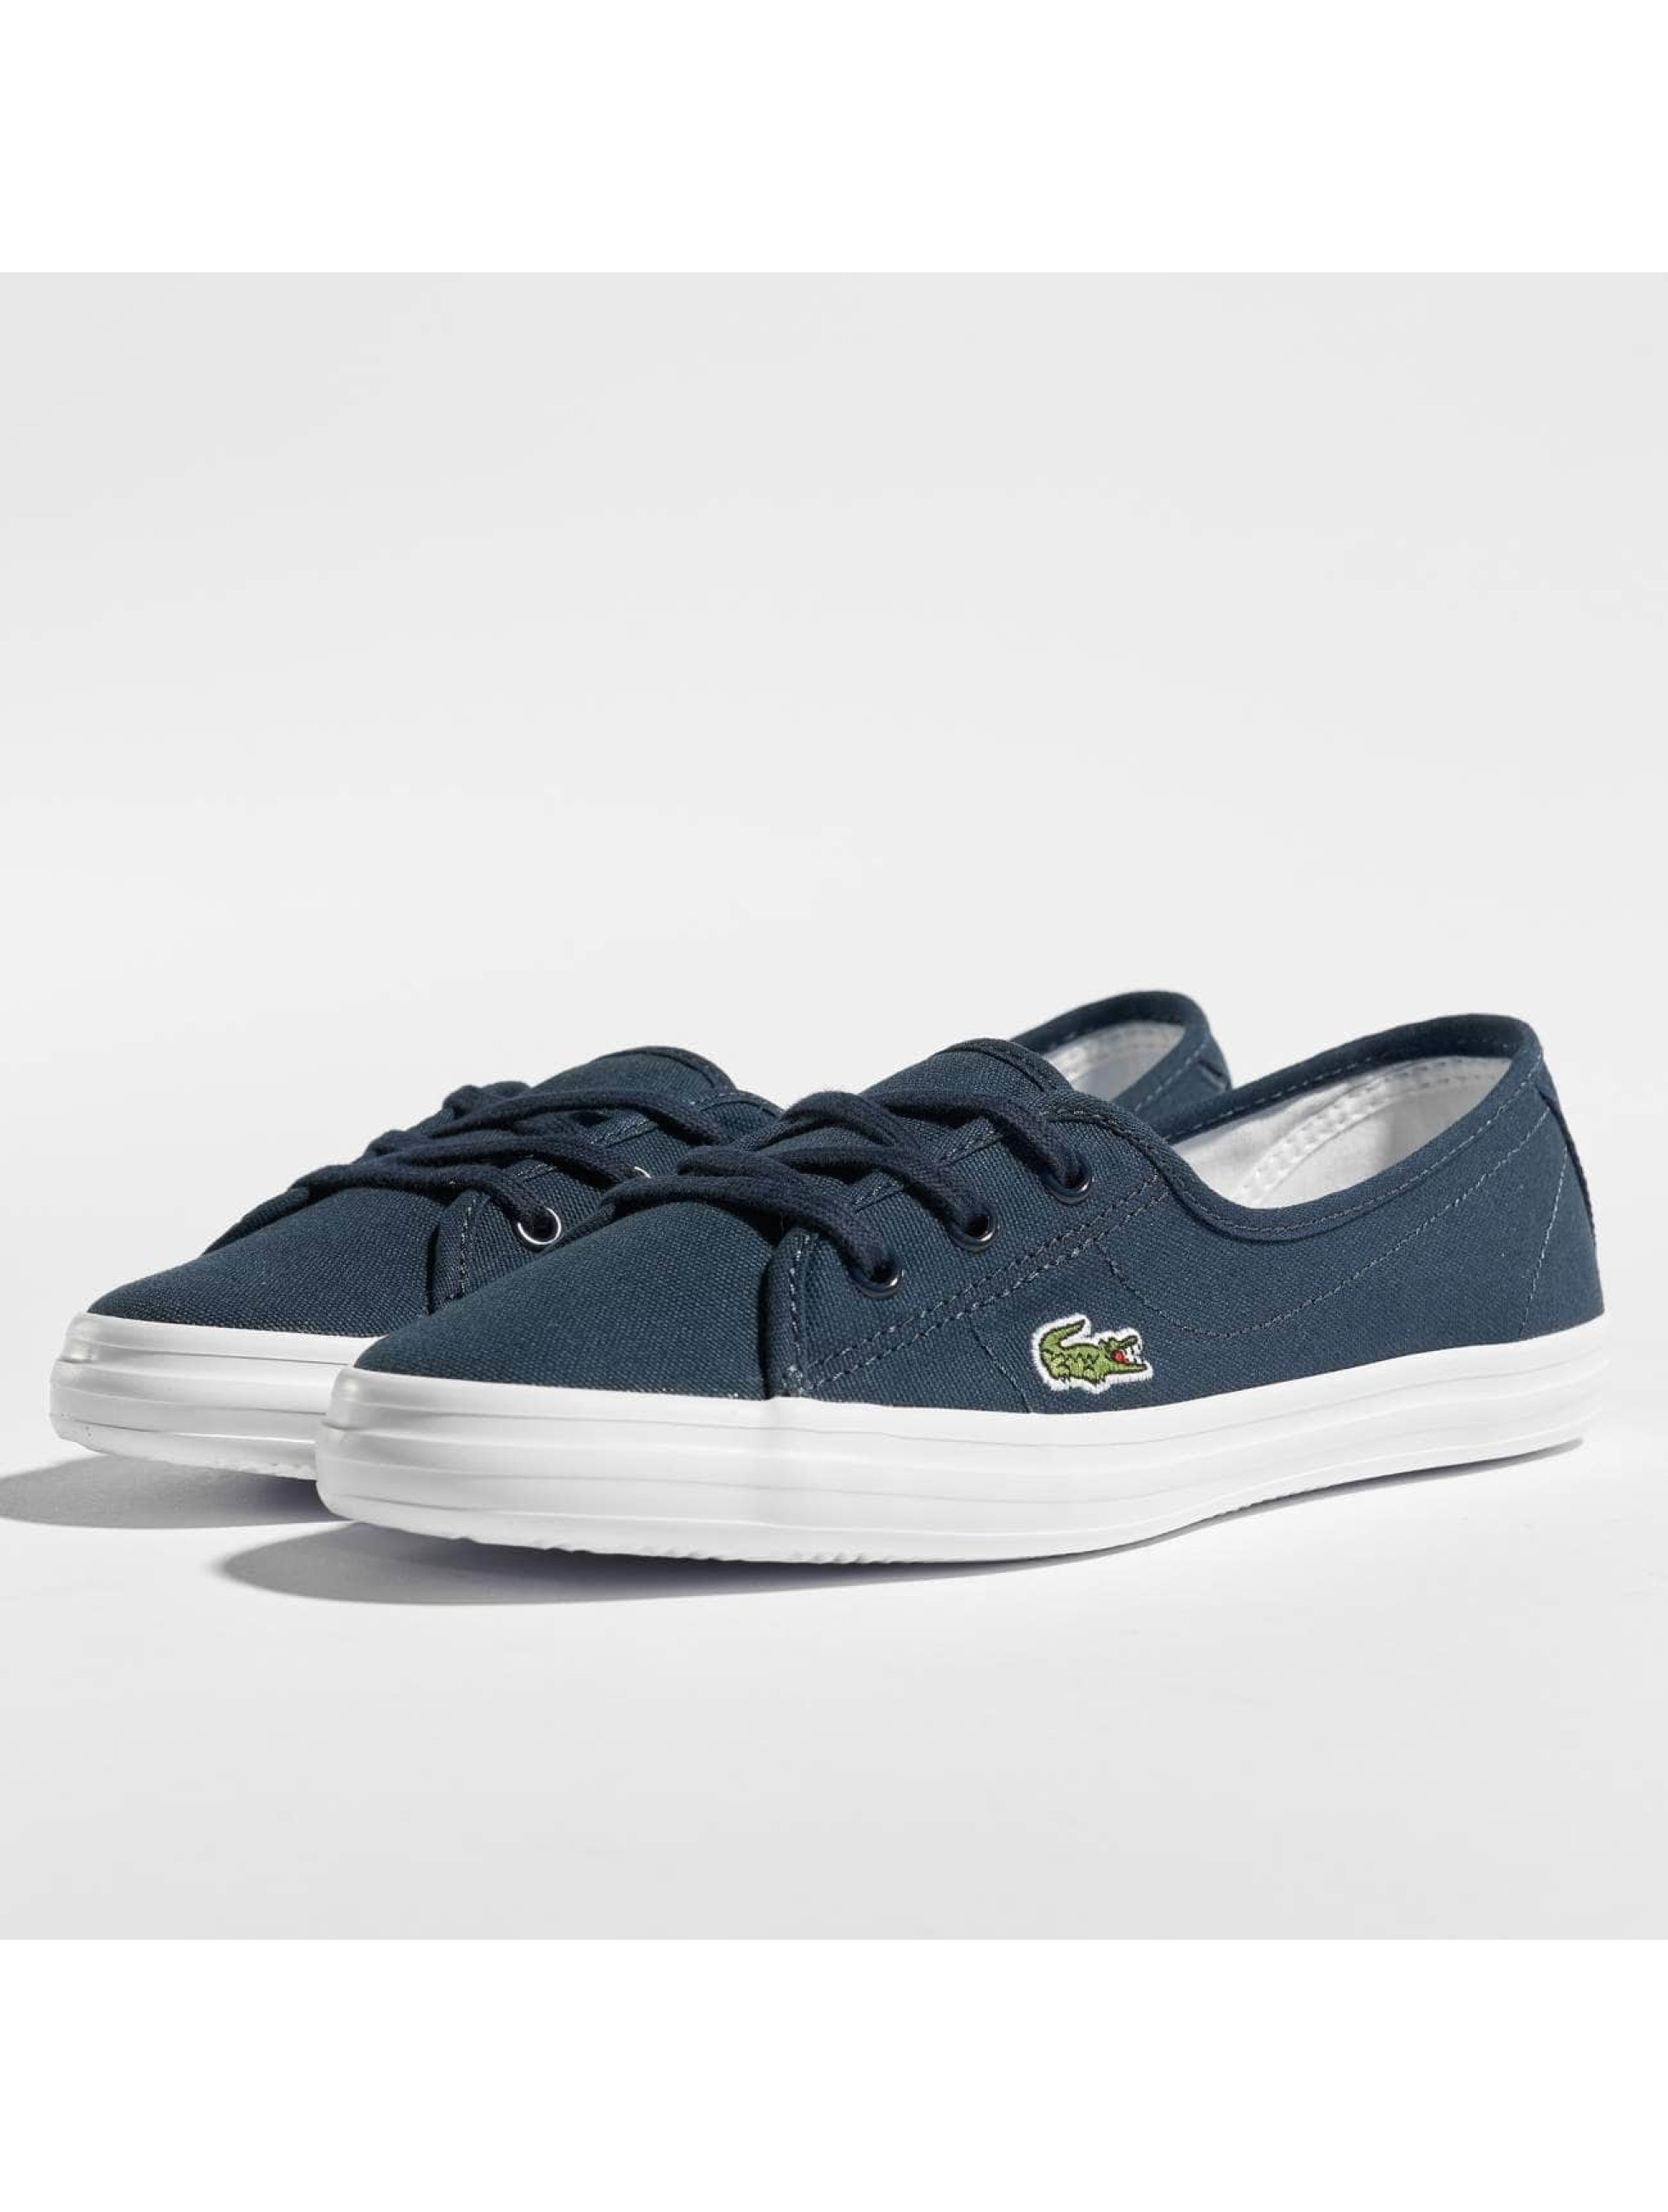 lacoste damen schuhe sneaker ziane chunky lcr spw ebay. Black Bedroom Furniture Sets. Home Design Ideas